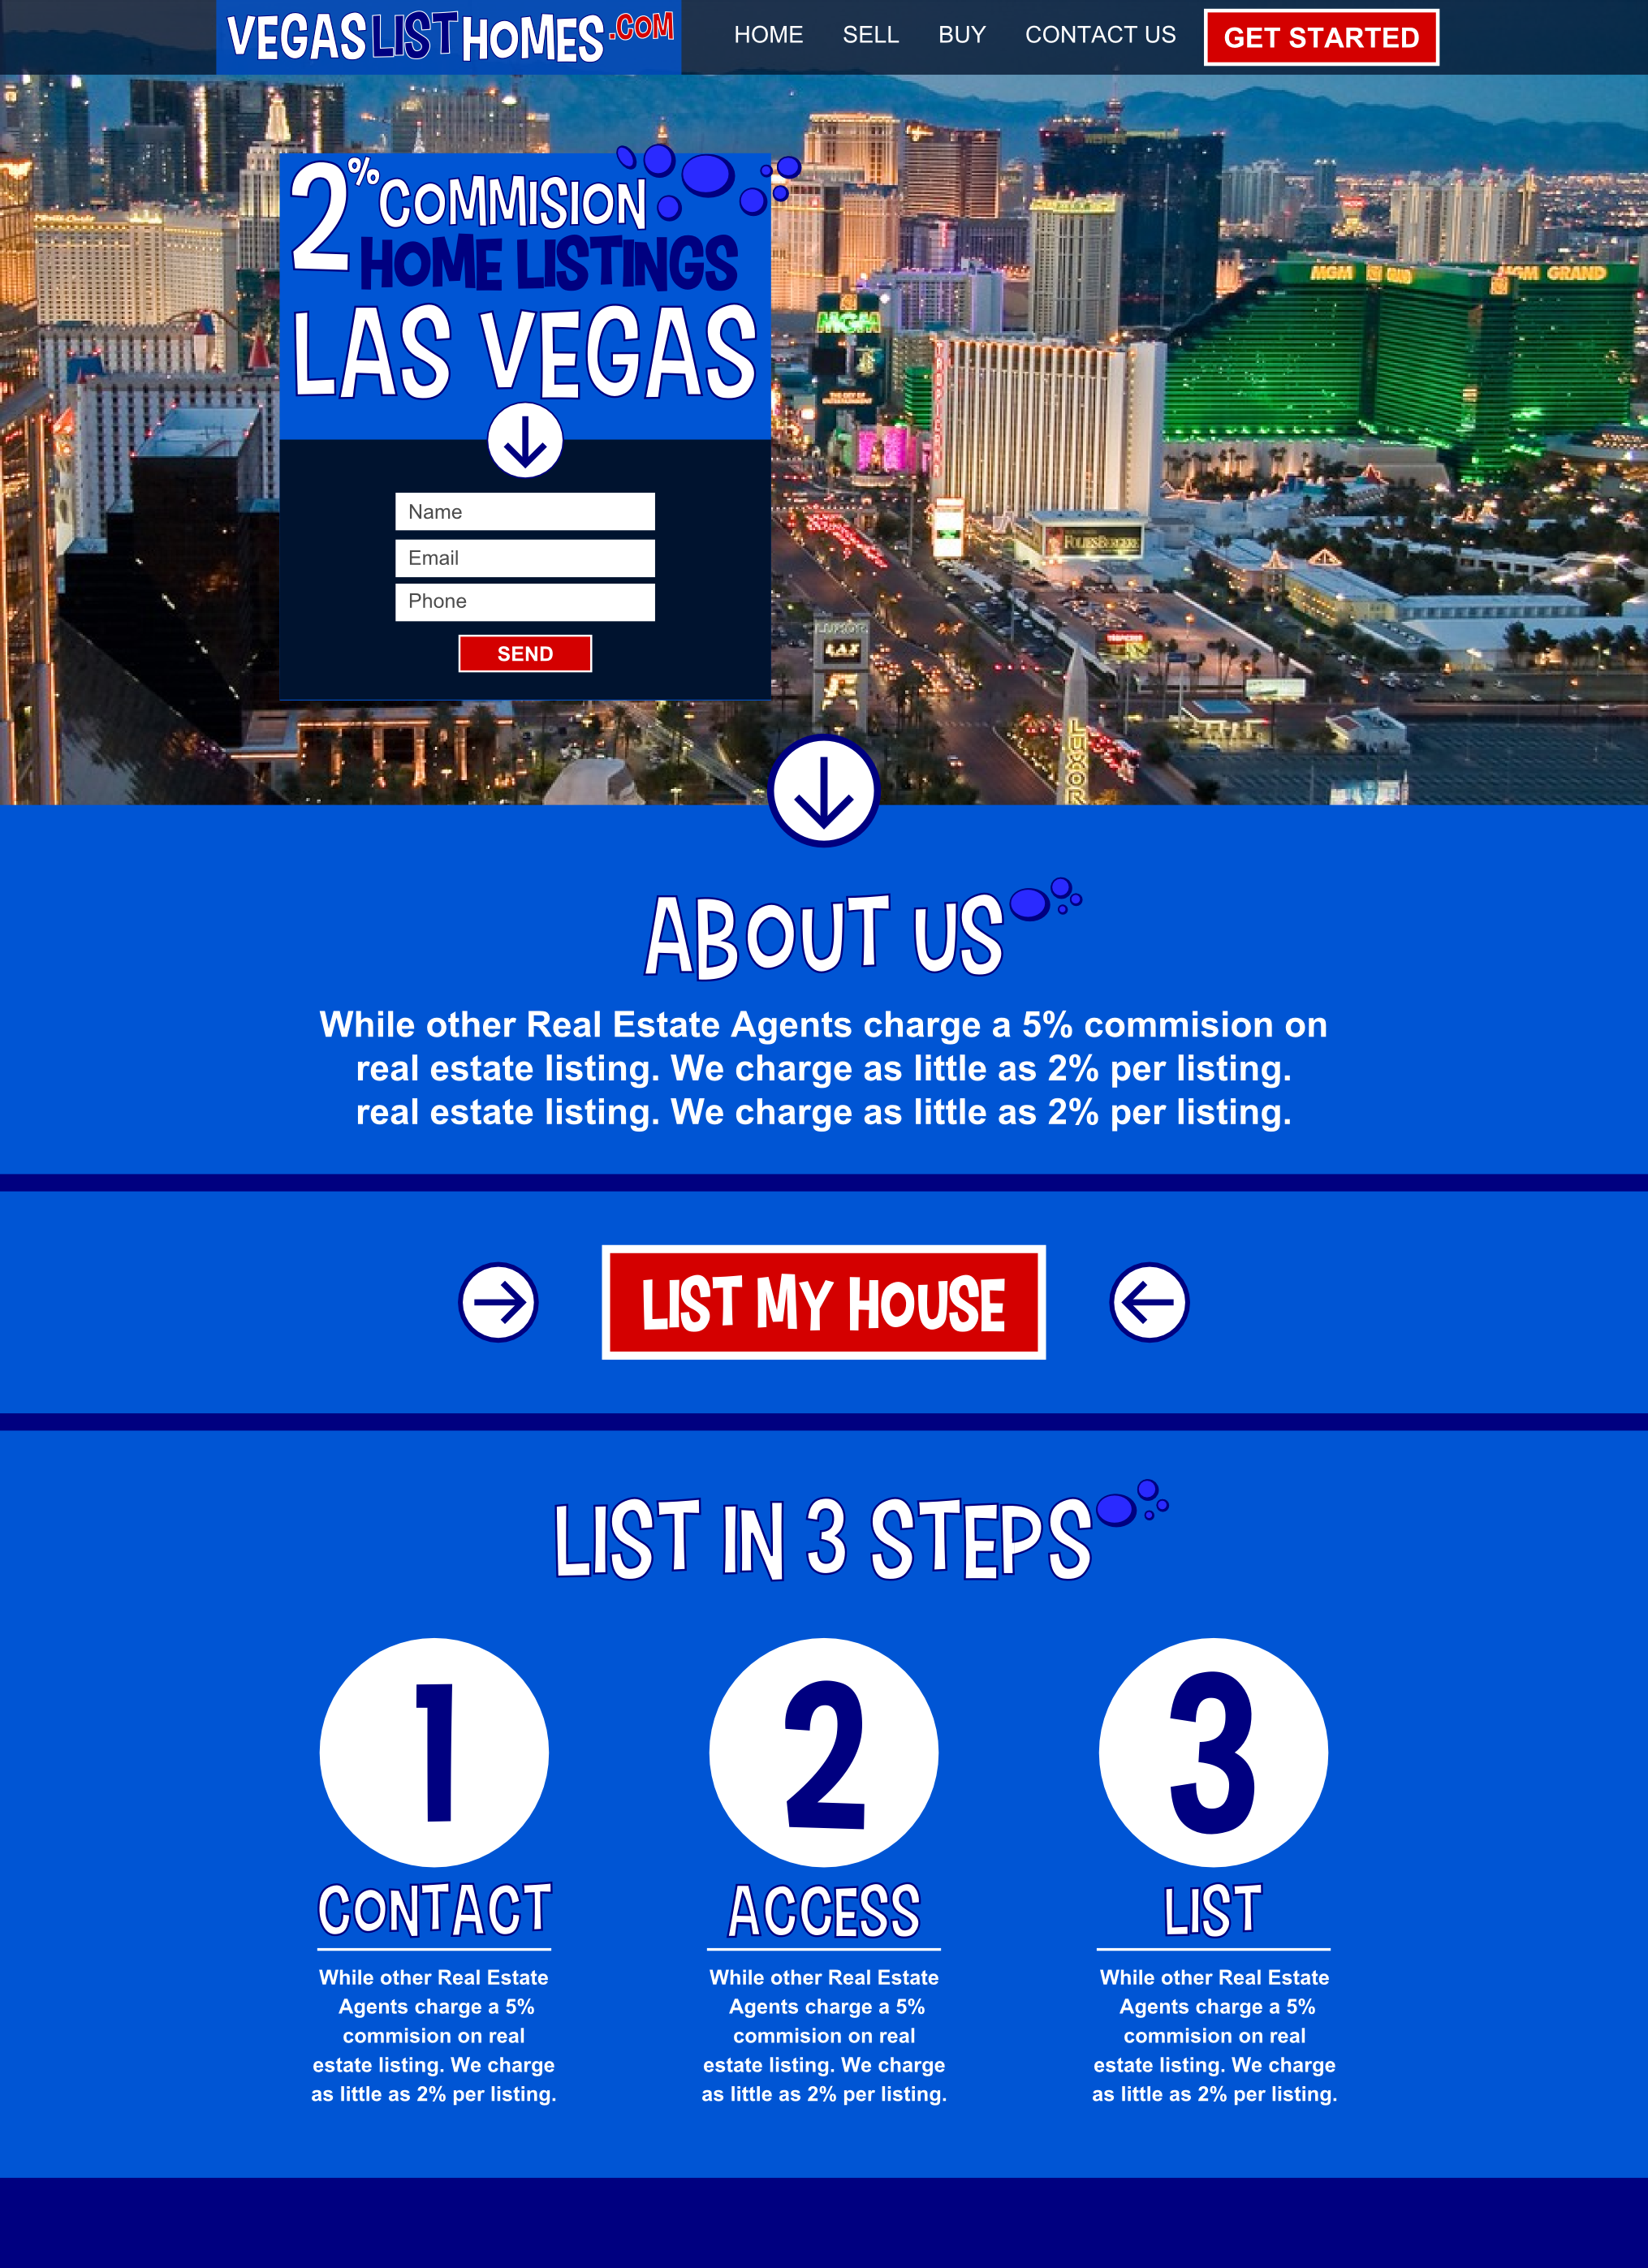 vegas list homes realty website design mockup